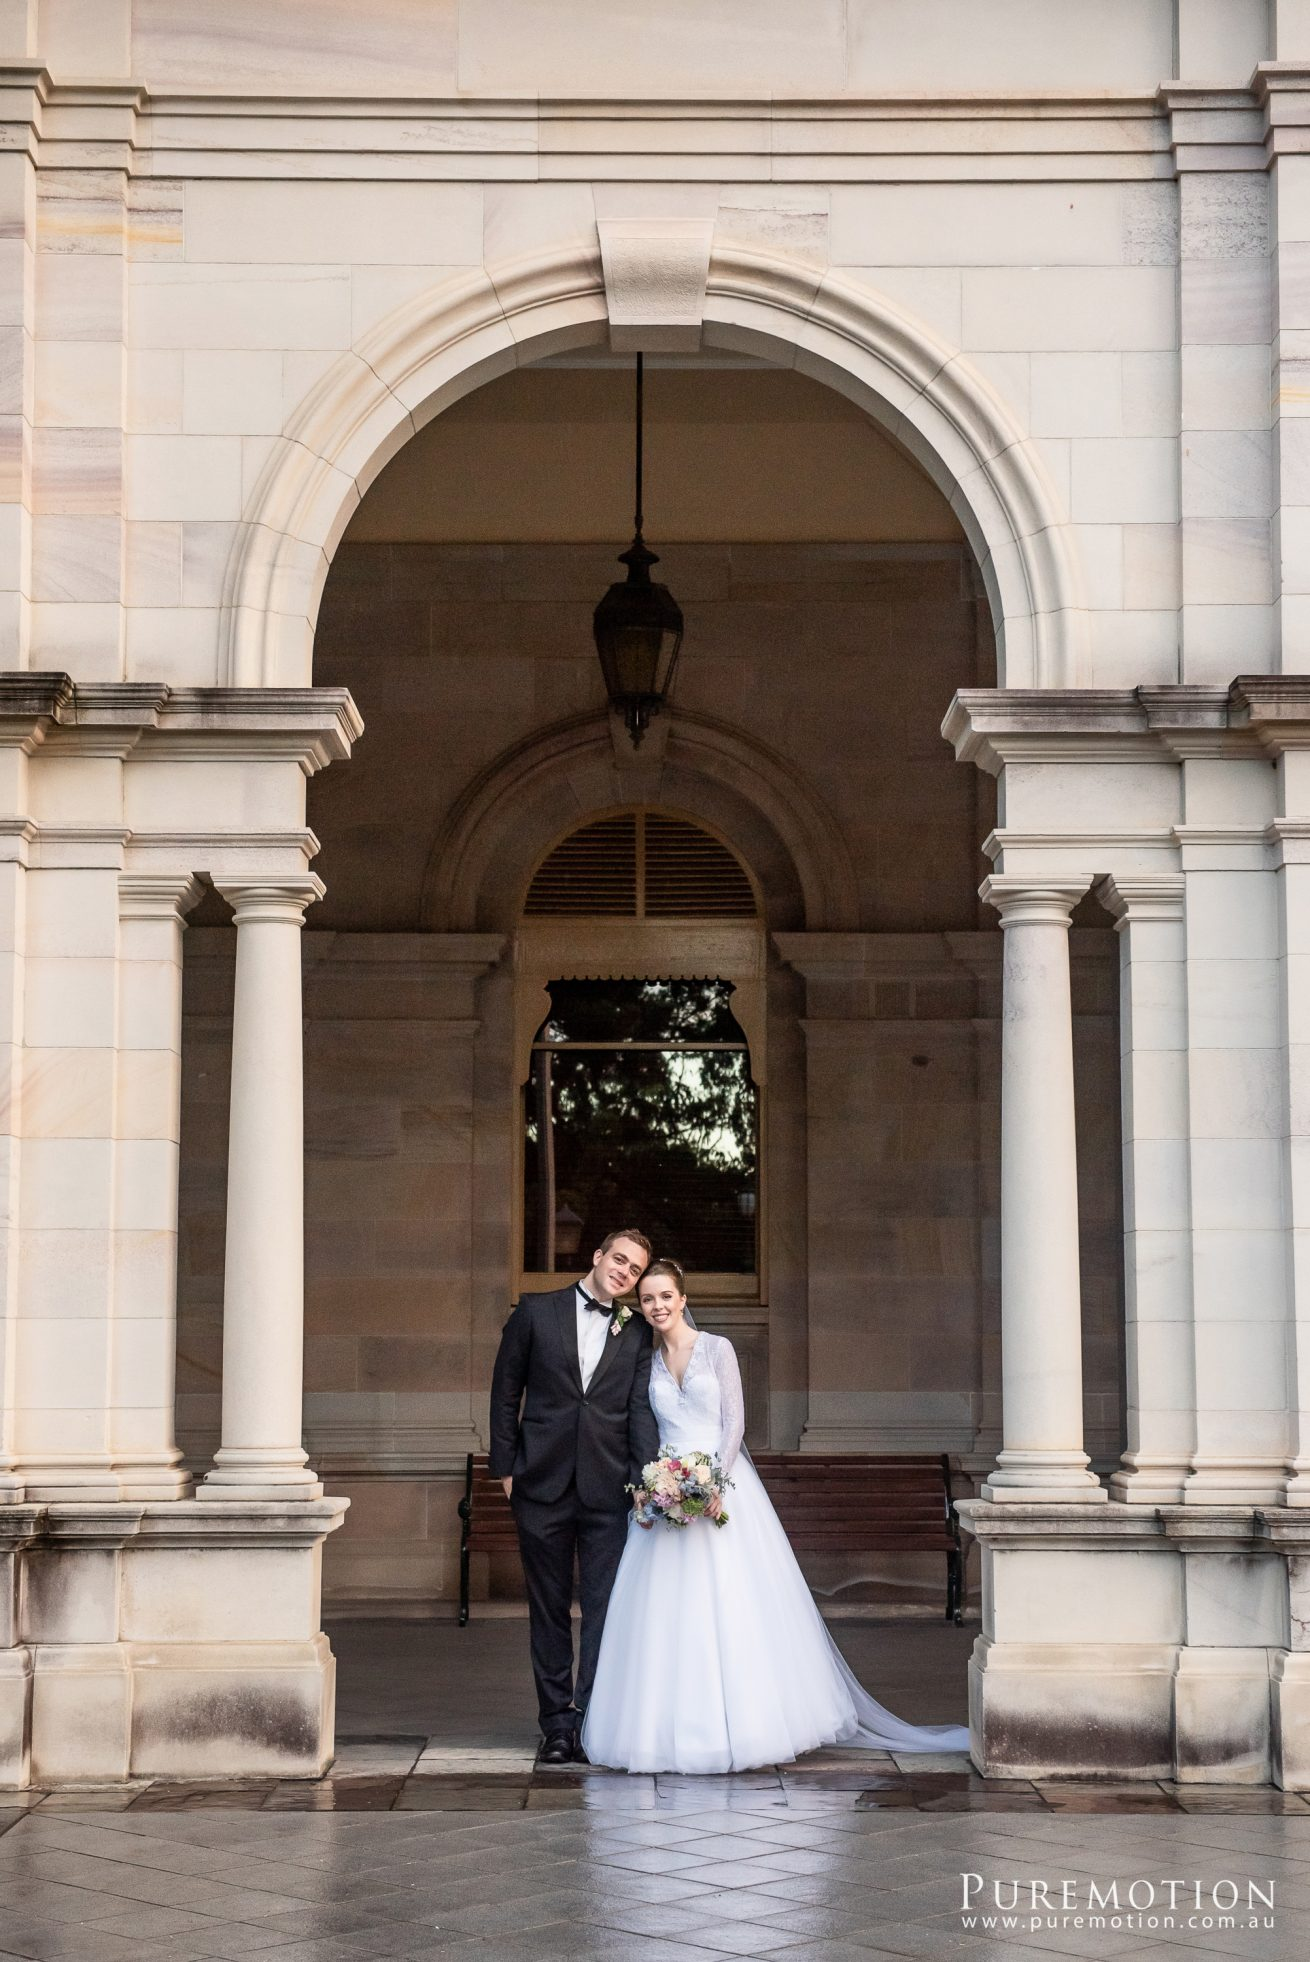 190517 Puremotion Wedding Photography Alex Huang Brisbane EmmaBen-0063